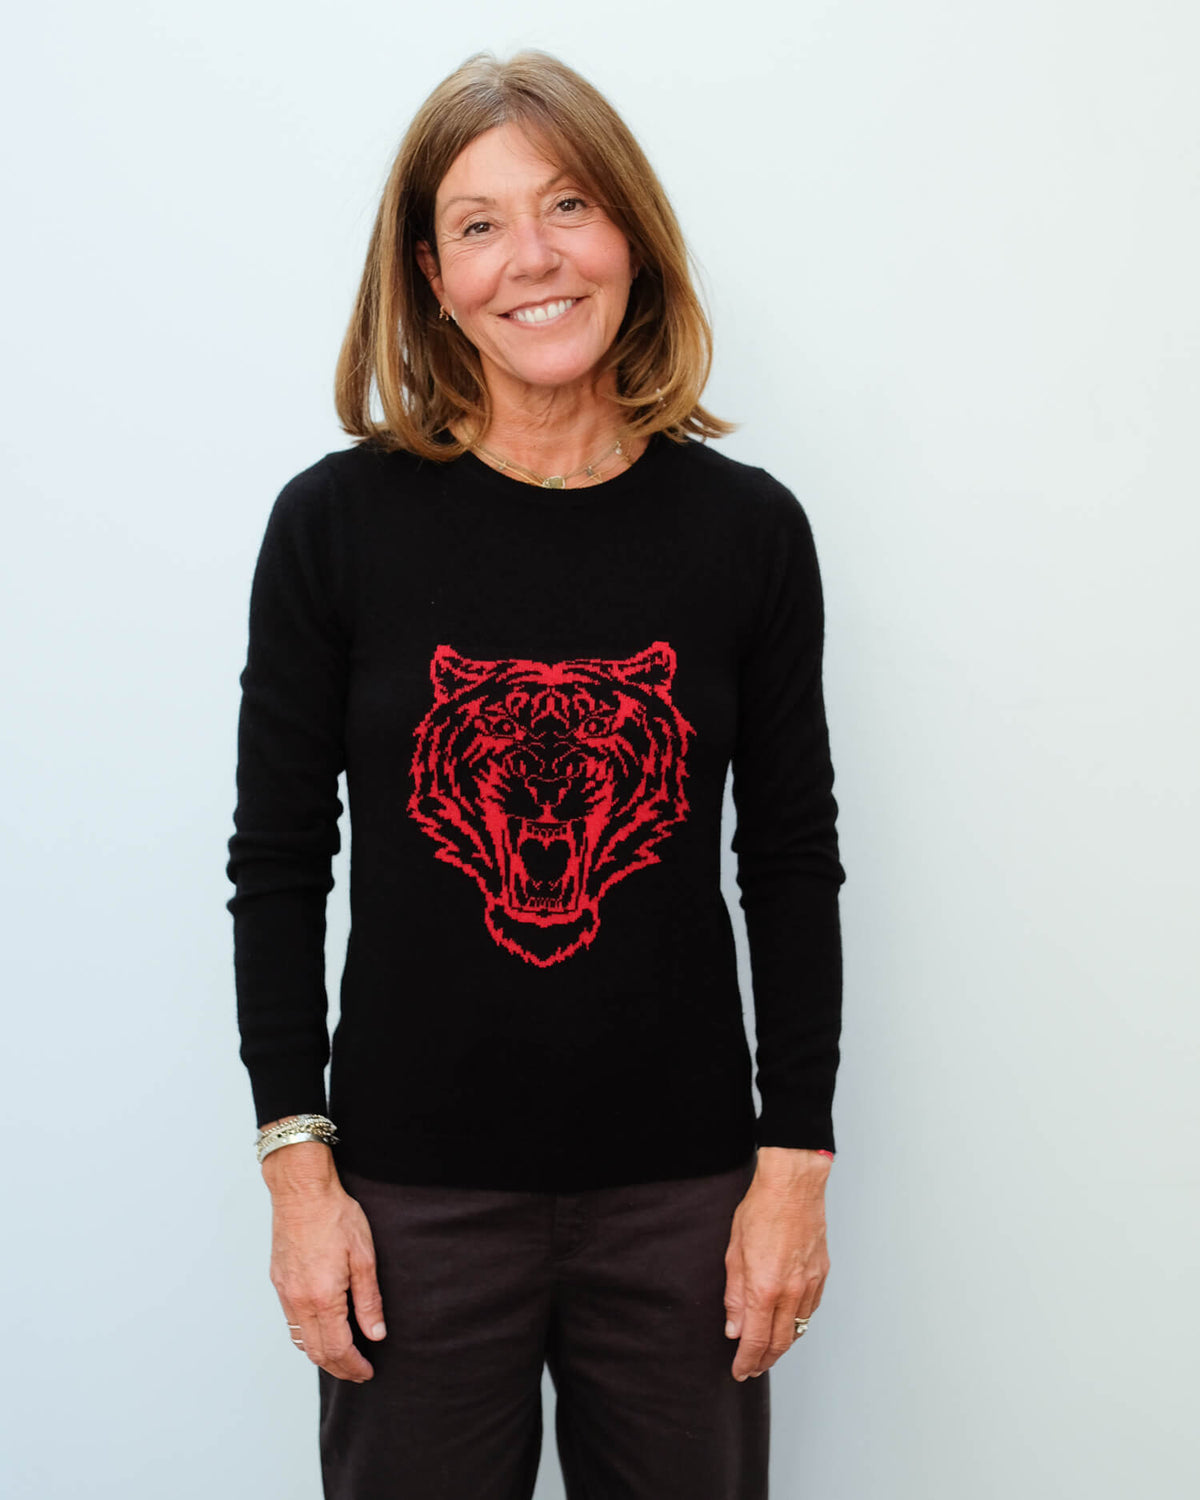 JU Lion crew in black and red